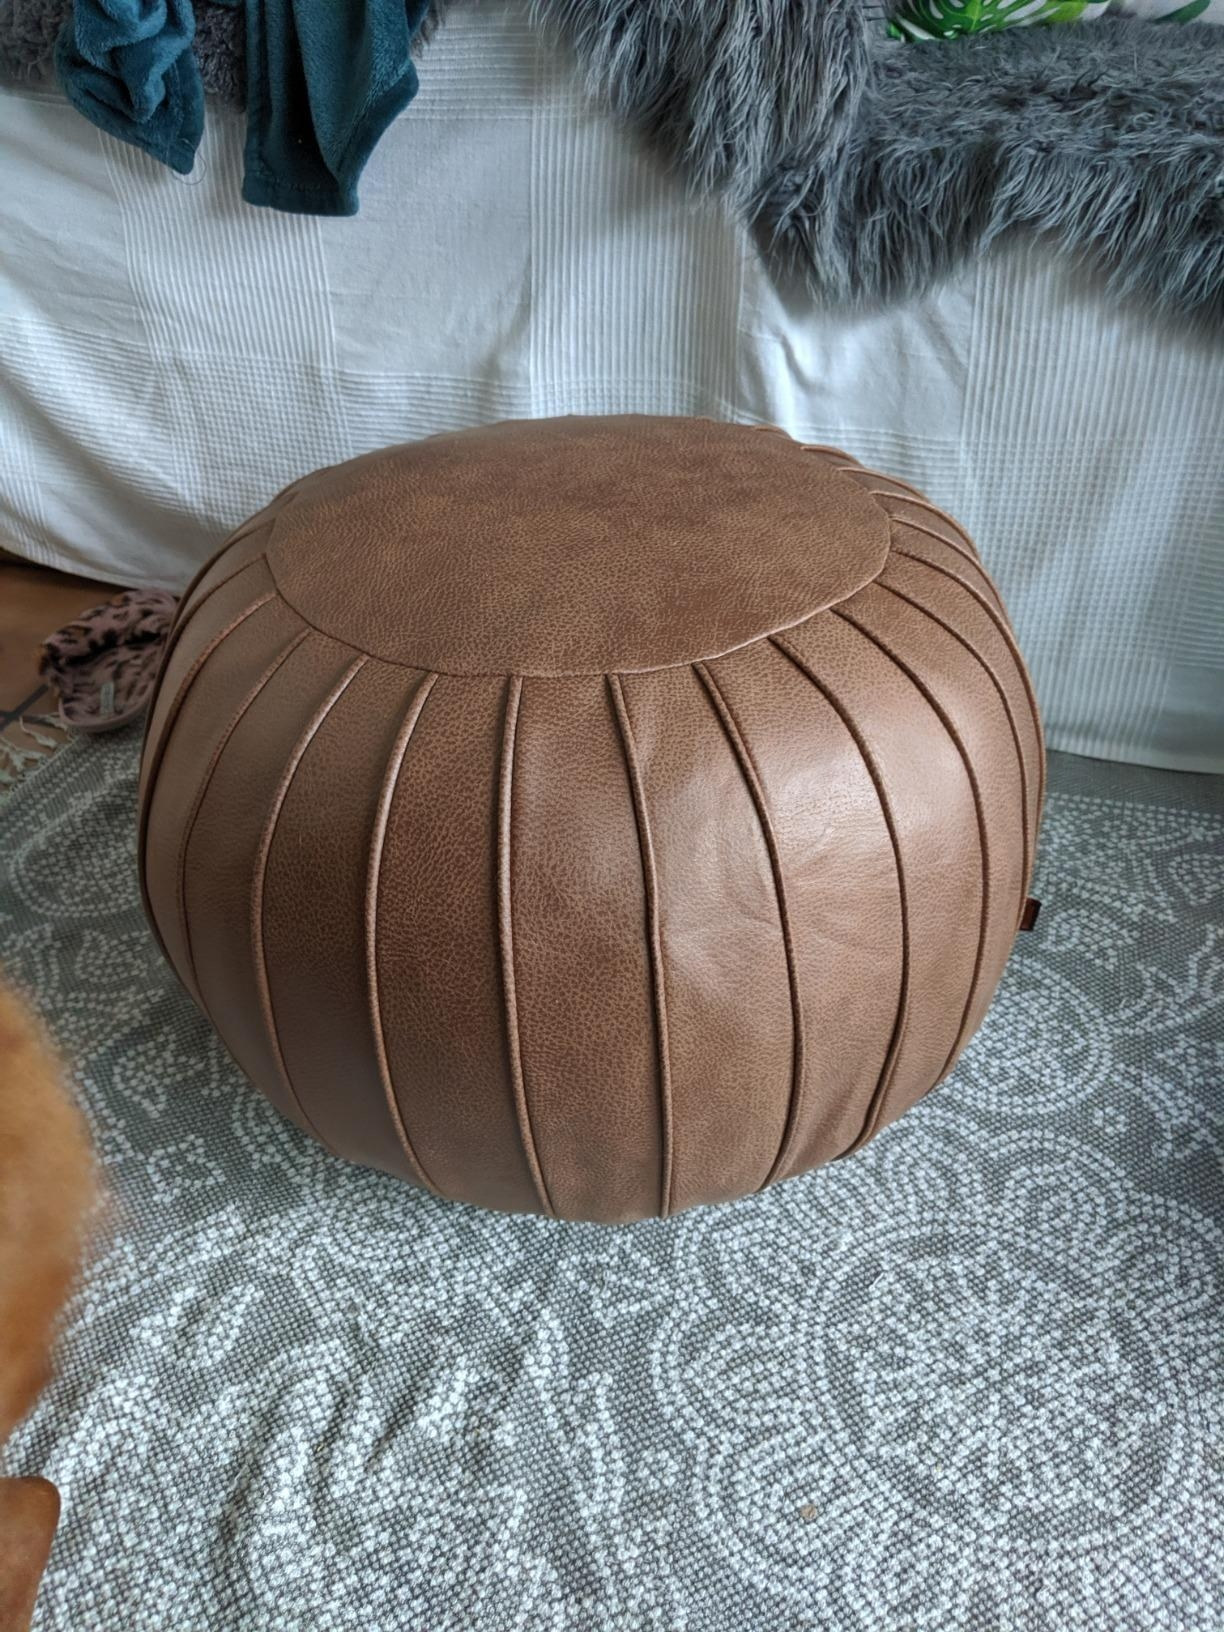 The suede pouf with vertical lines all around